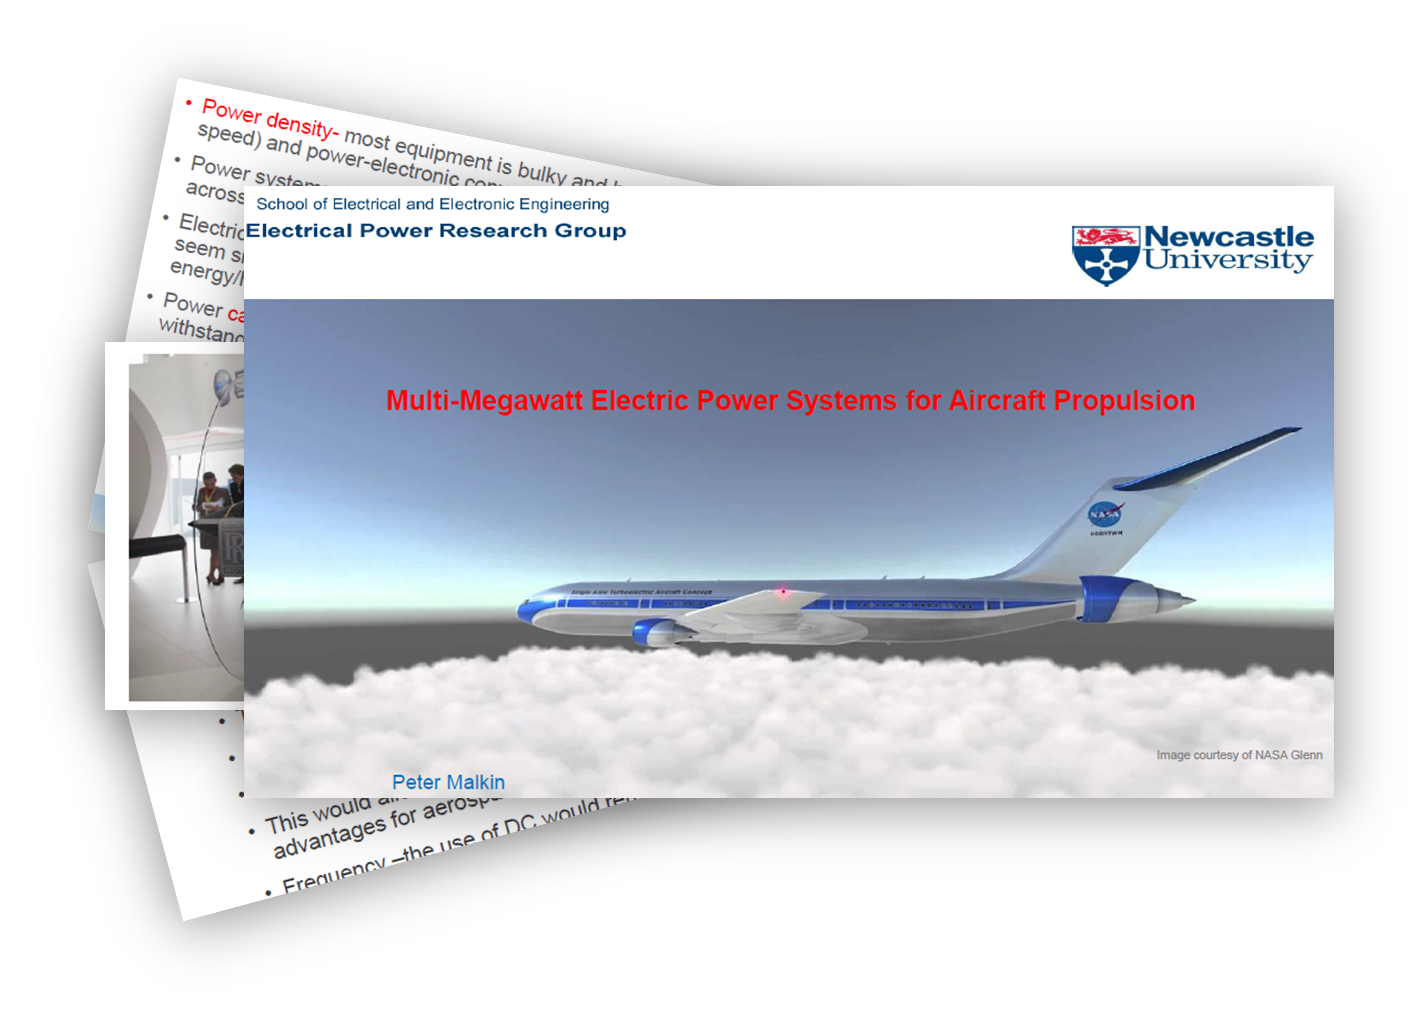 Multi-Megawatt Electric Power Sytems for Aircraft Propulsion